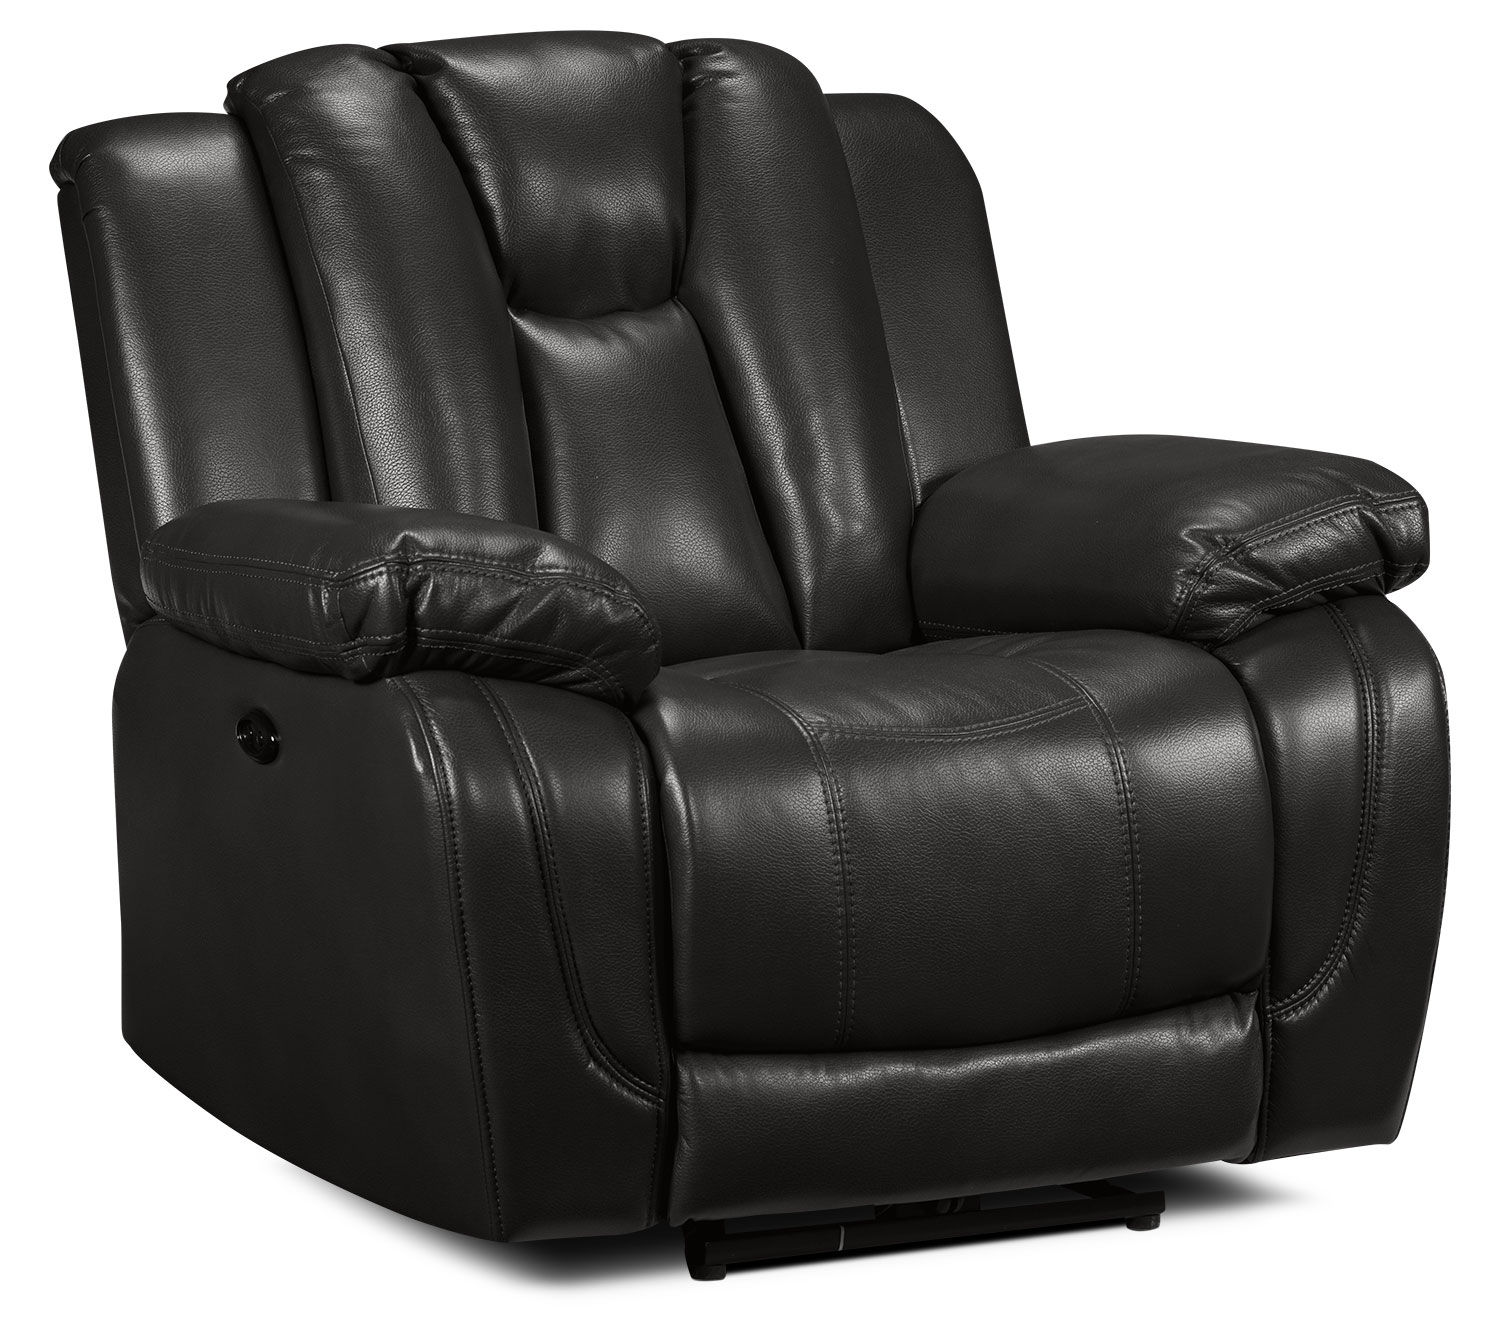 Living Room Furniture - Knight Power Recliner - Grey